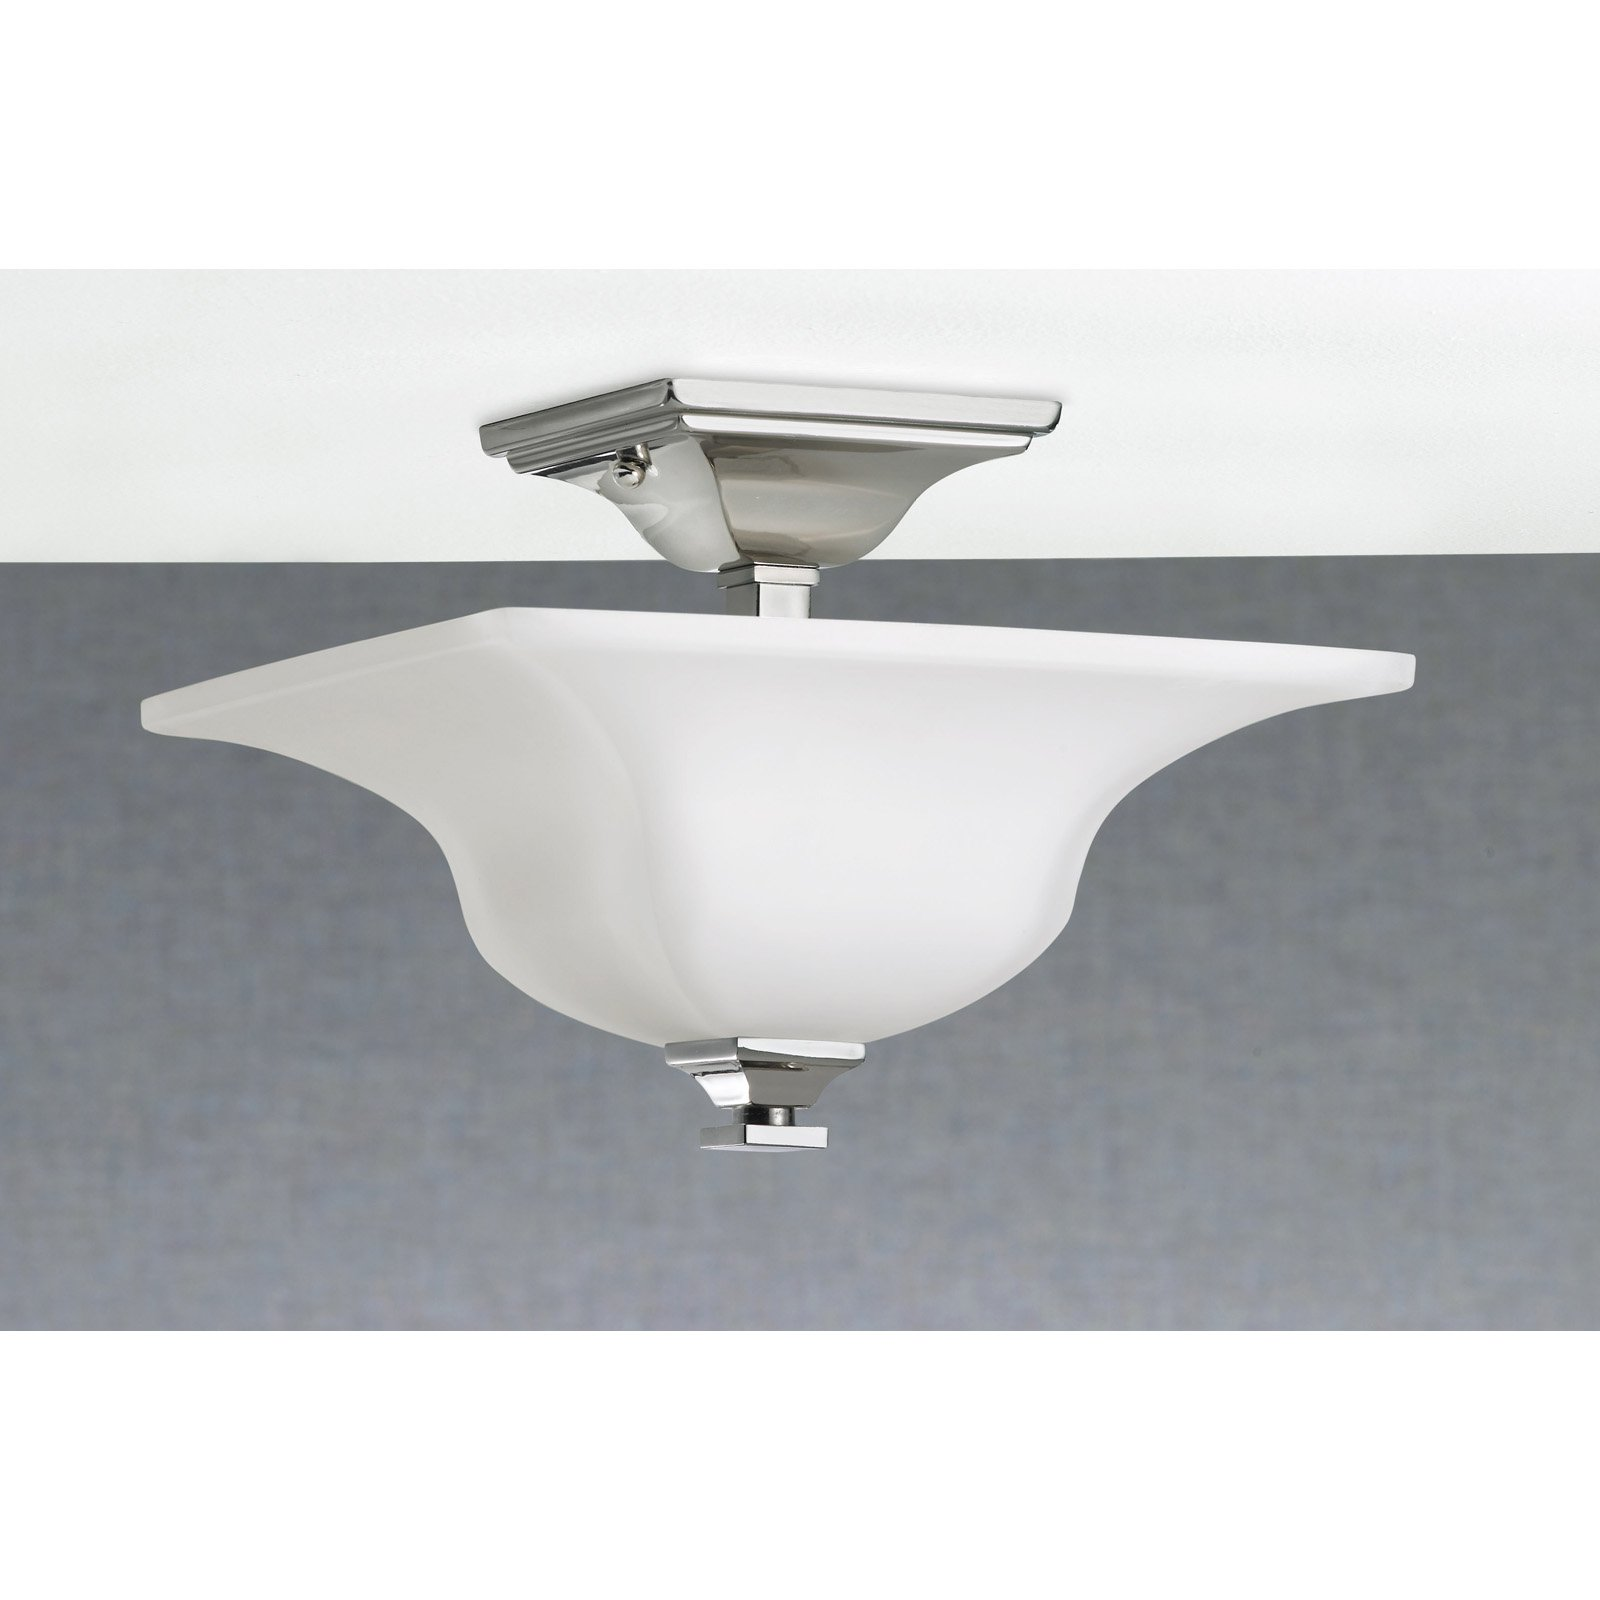 Feiss American Foursquare SF236 Semi Flush Mount 11W in. by Murray Feiss